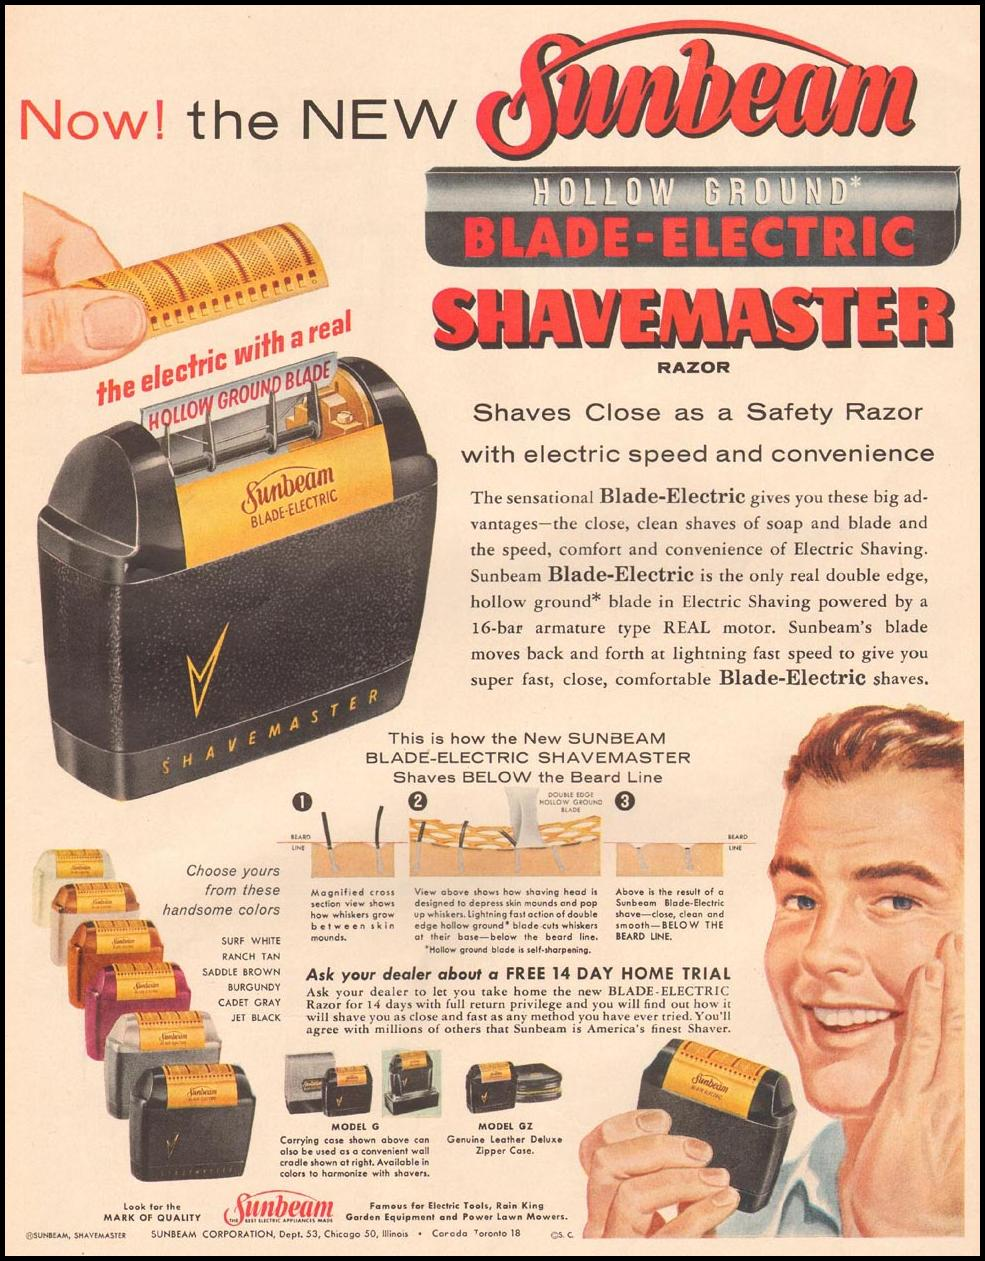 SUNBEAM SHAVEMASTER ELECTRIC SHAVER LIFE 09/09/1957 p. 13